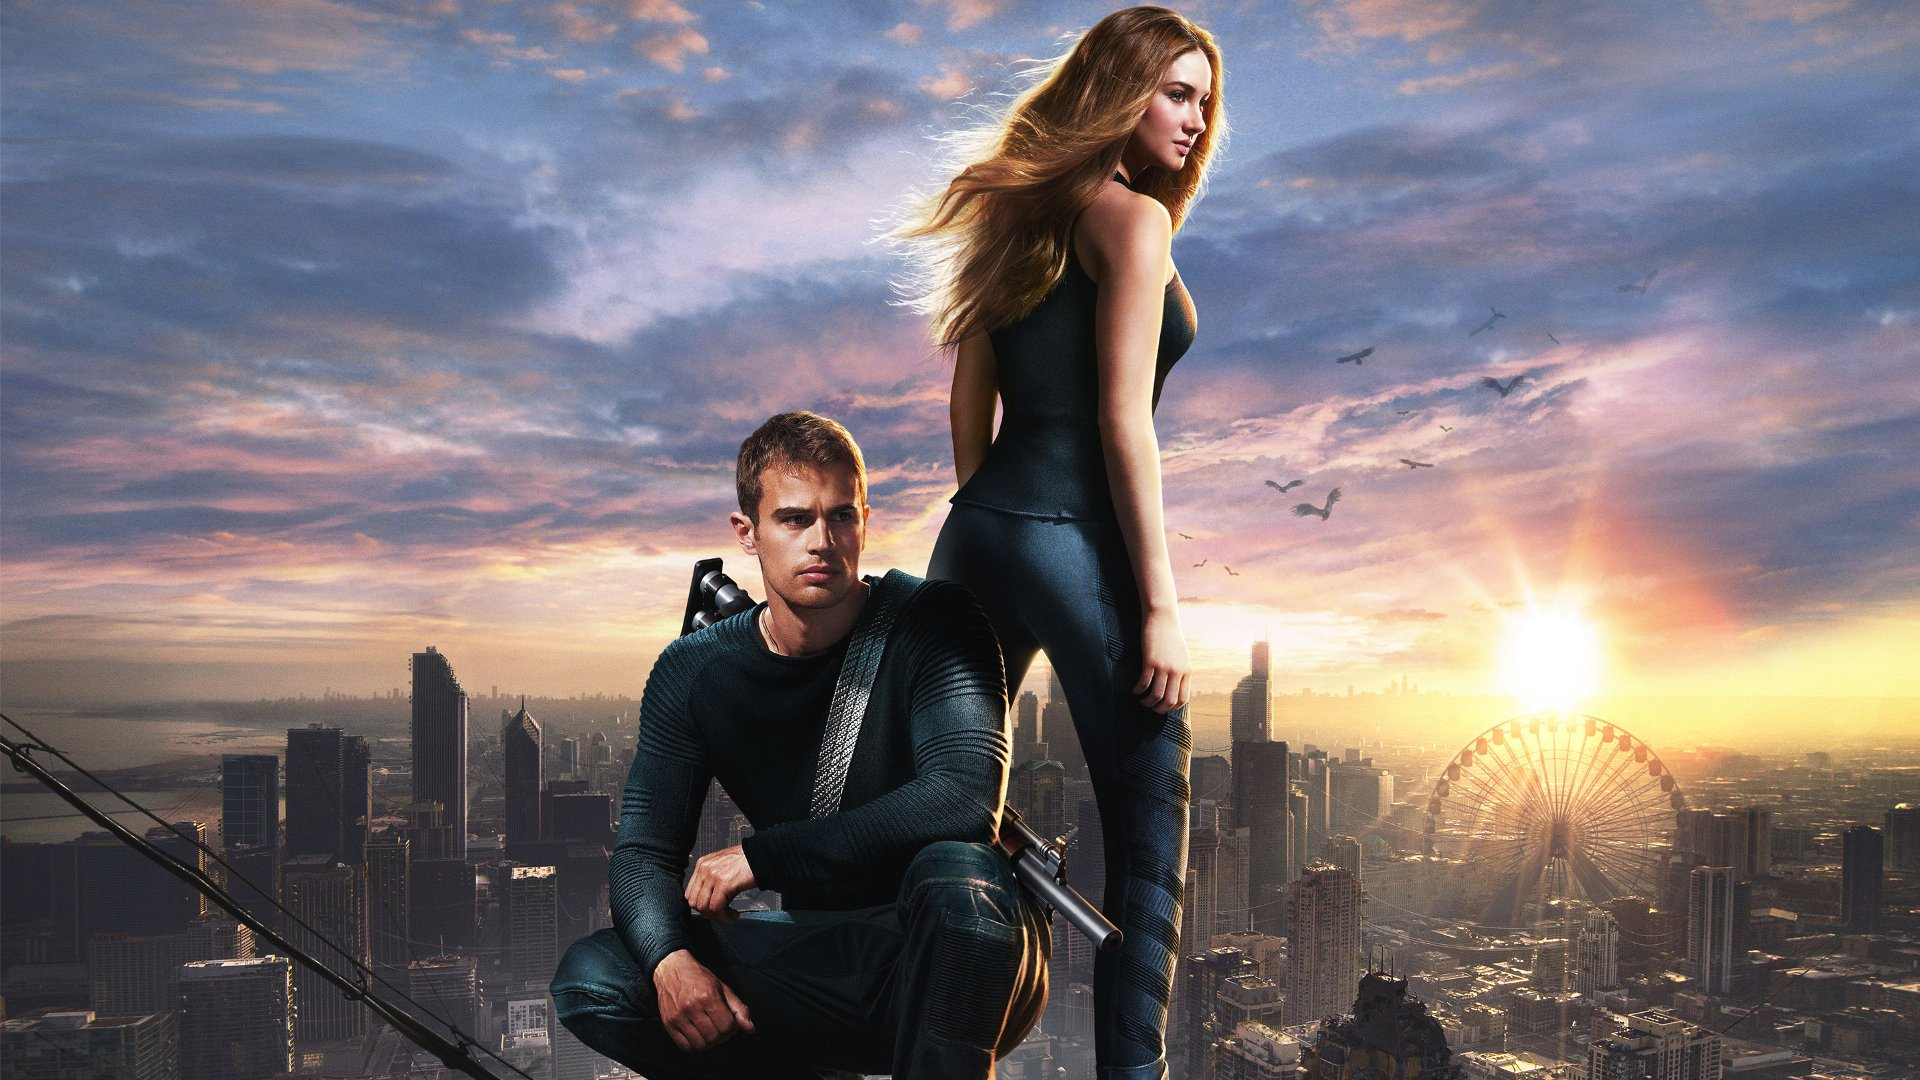 Regarder Divergente en streaming gratuit